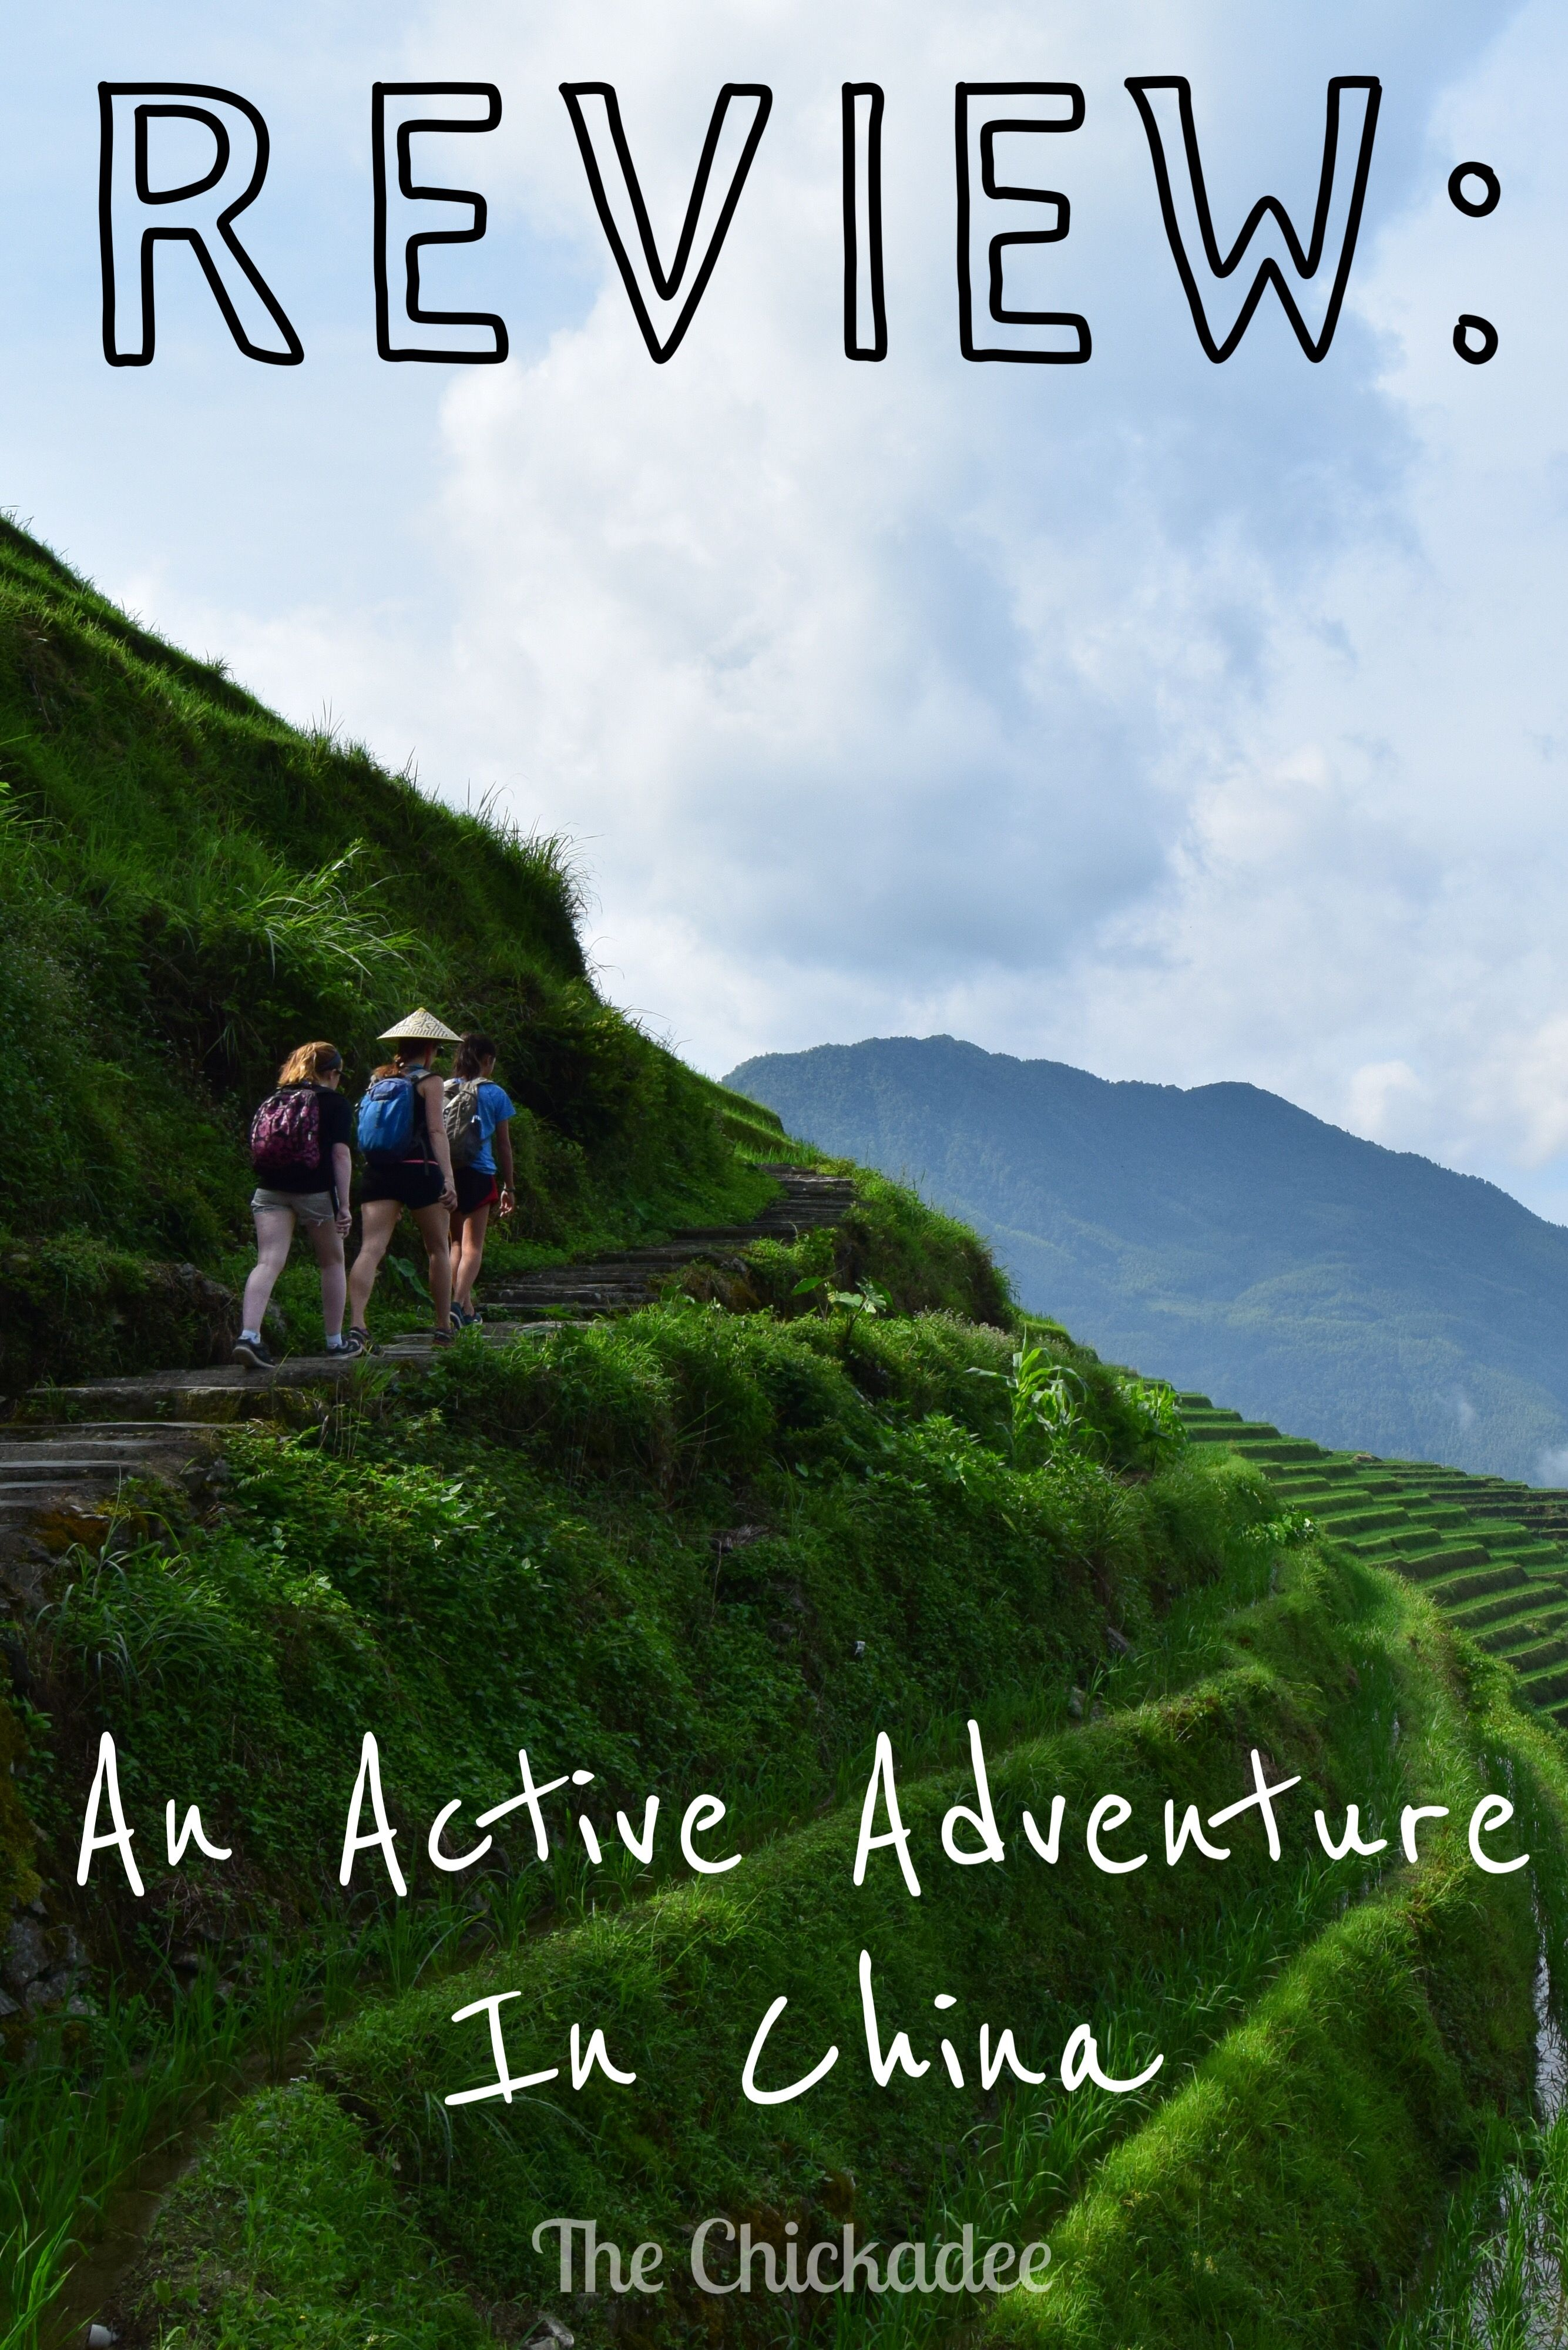 People told me that I wouldn't like China, but I thought – why not? There's a Great Wall there and I like Chinese food! So I went anyway and I'm glad I did. I travelled to China on a group active adventure tour and it was amazing. Find out why in my review.